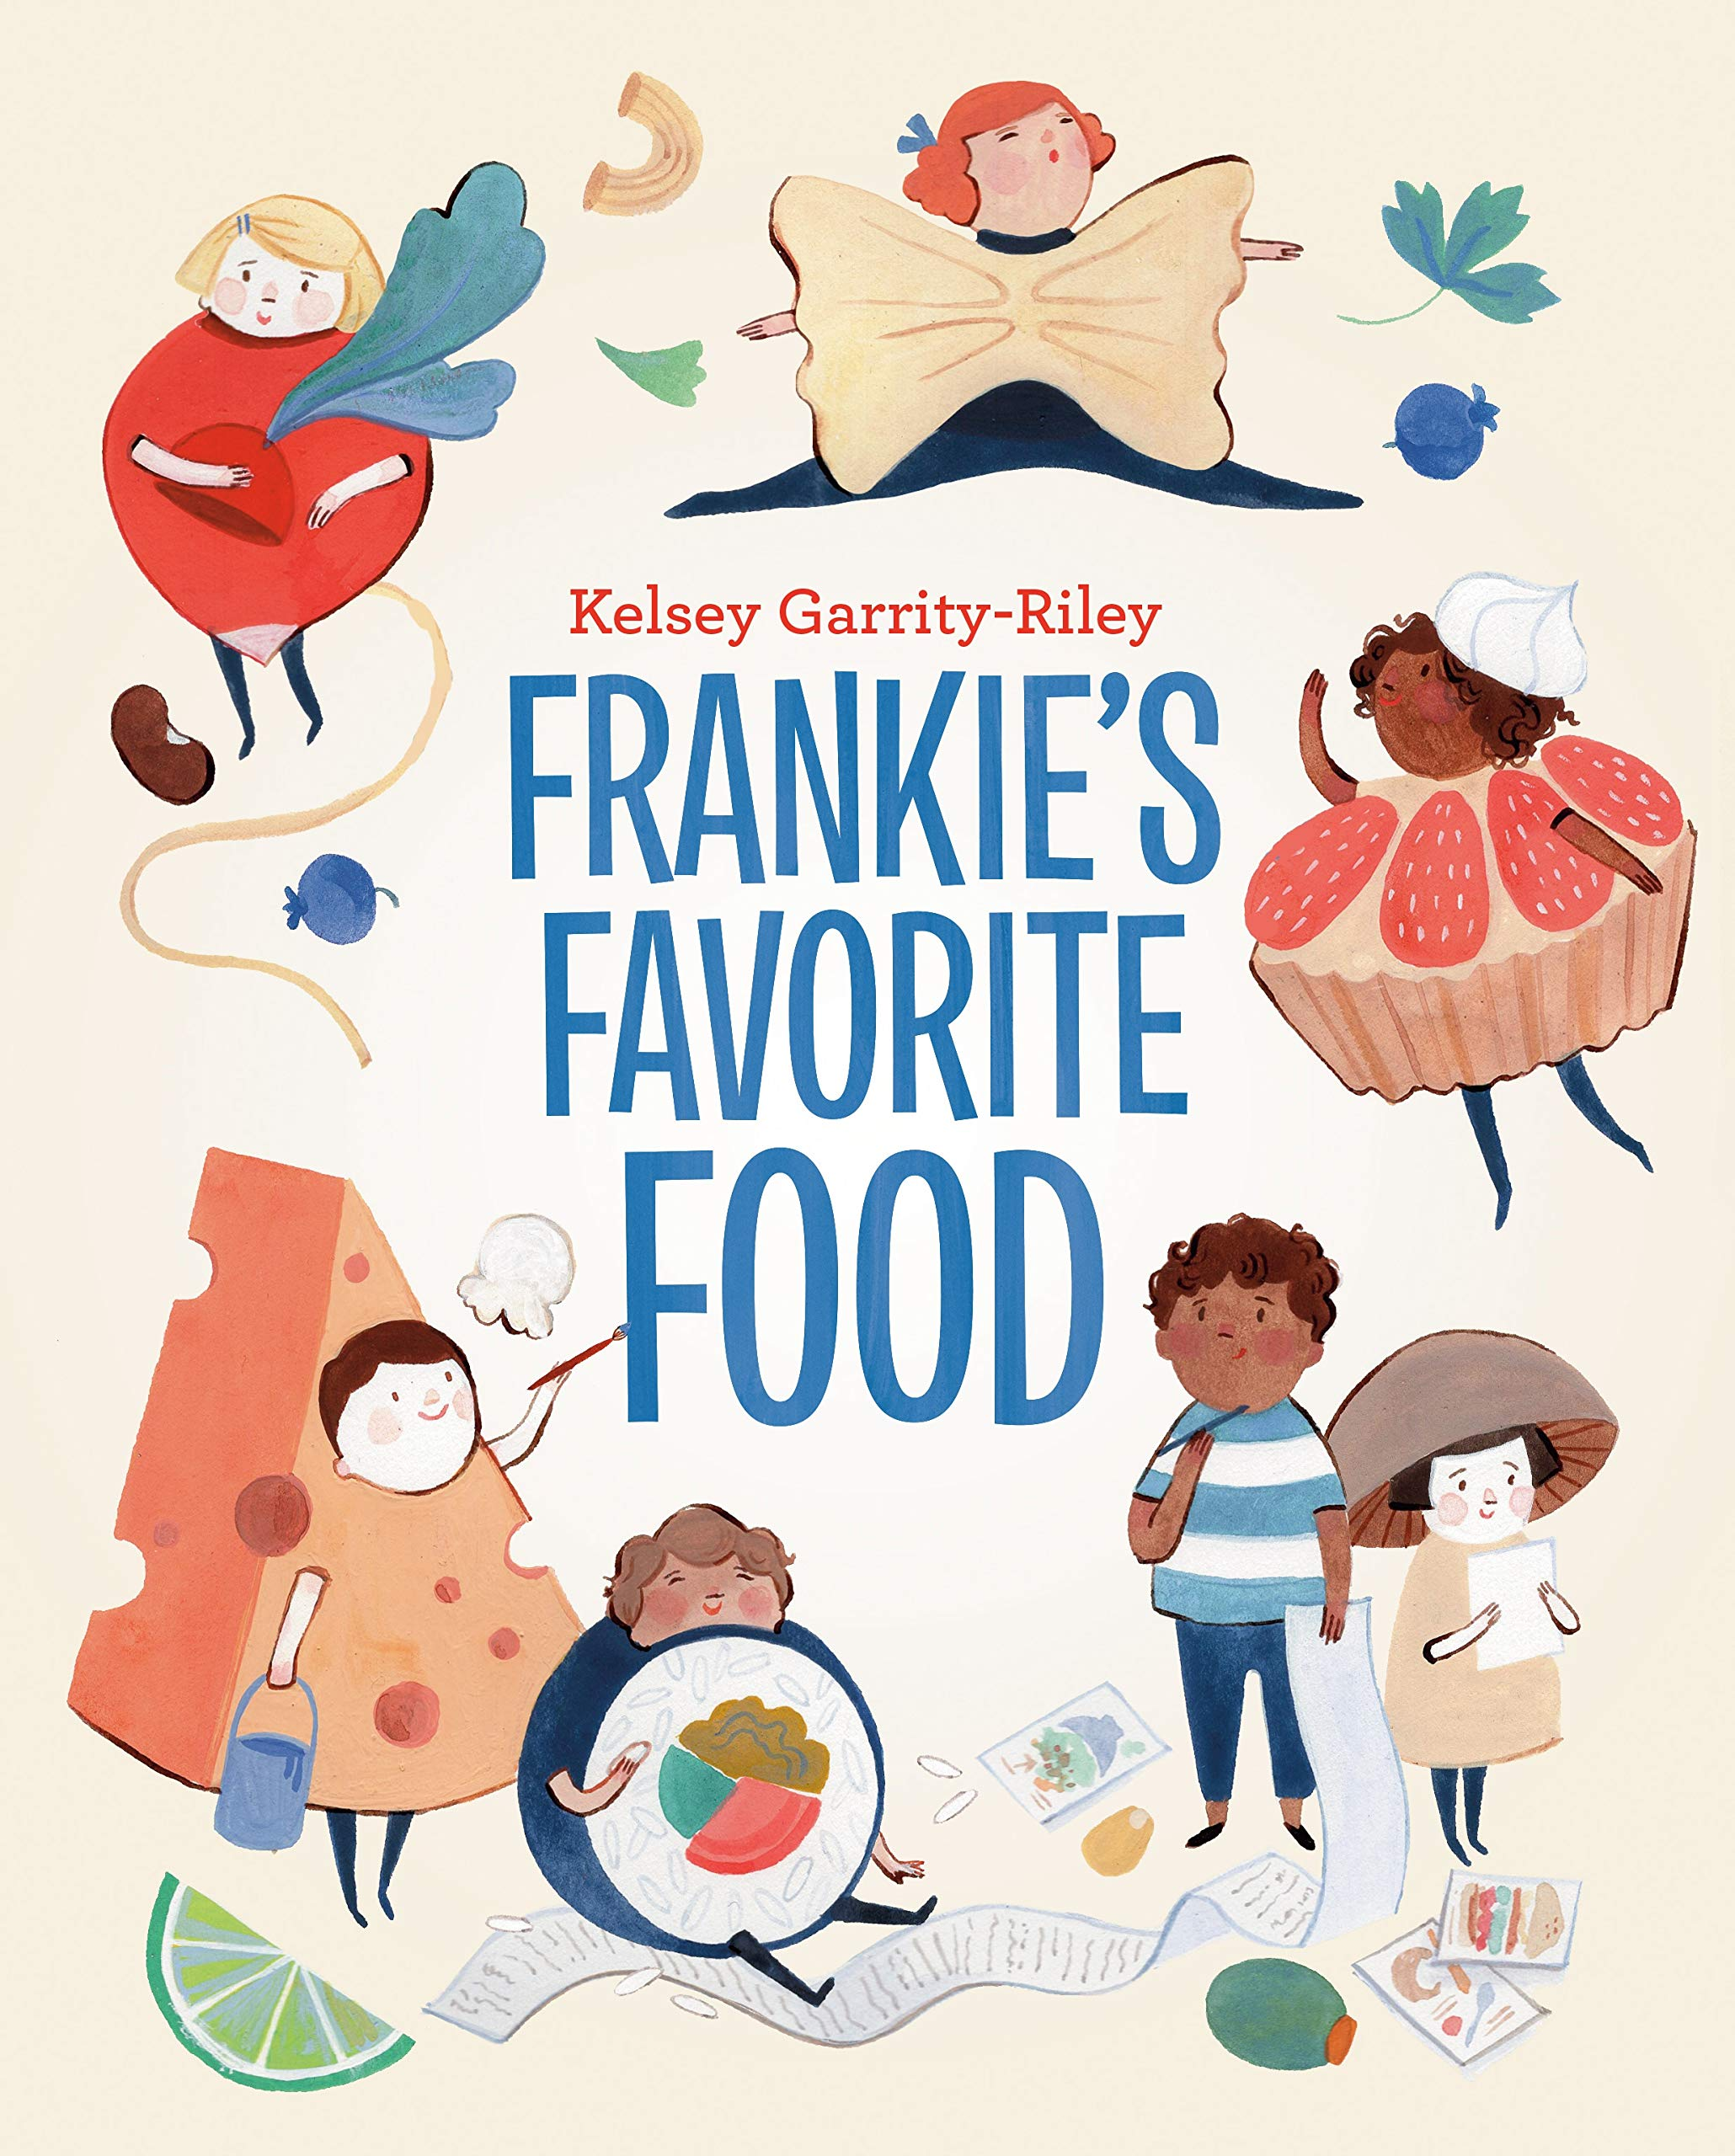 Sunday Story Time: Frankie's Favorite Food by Kelsey Garrity-Riley